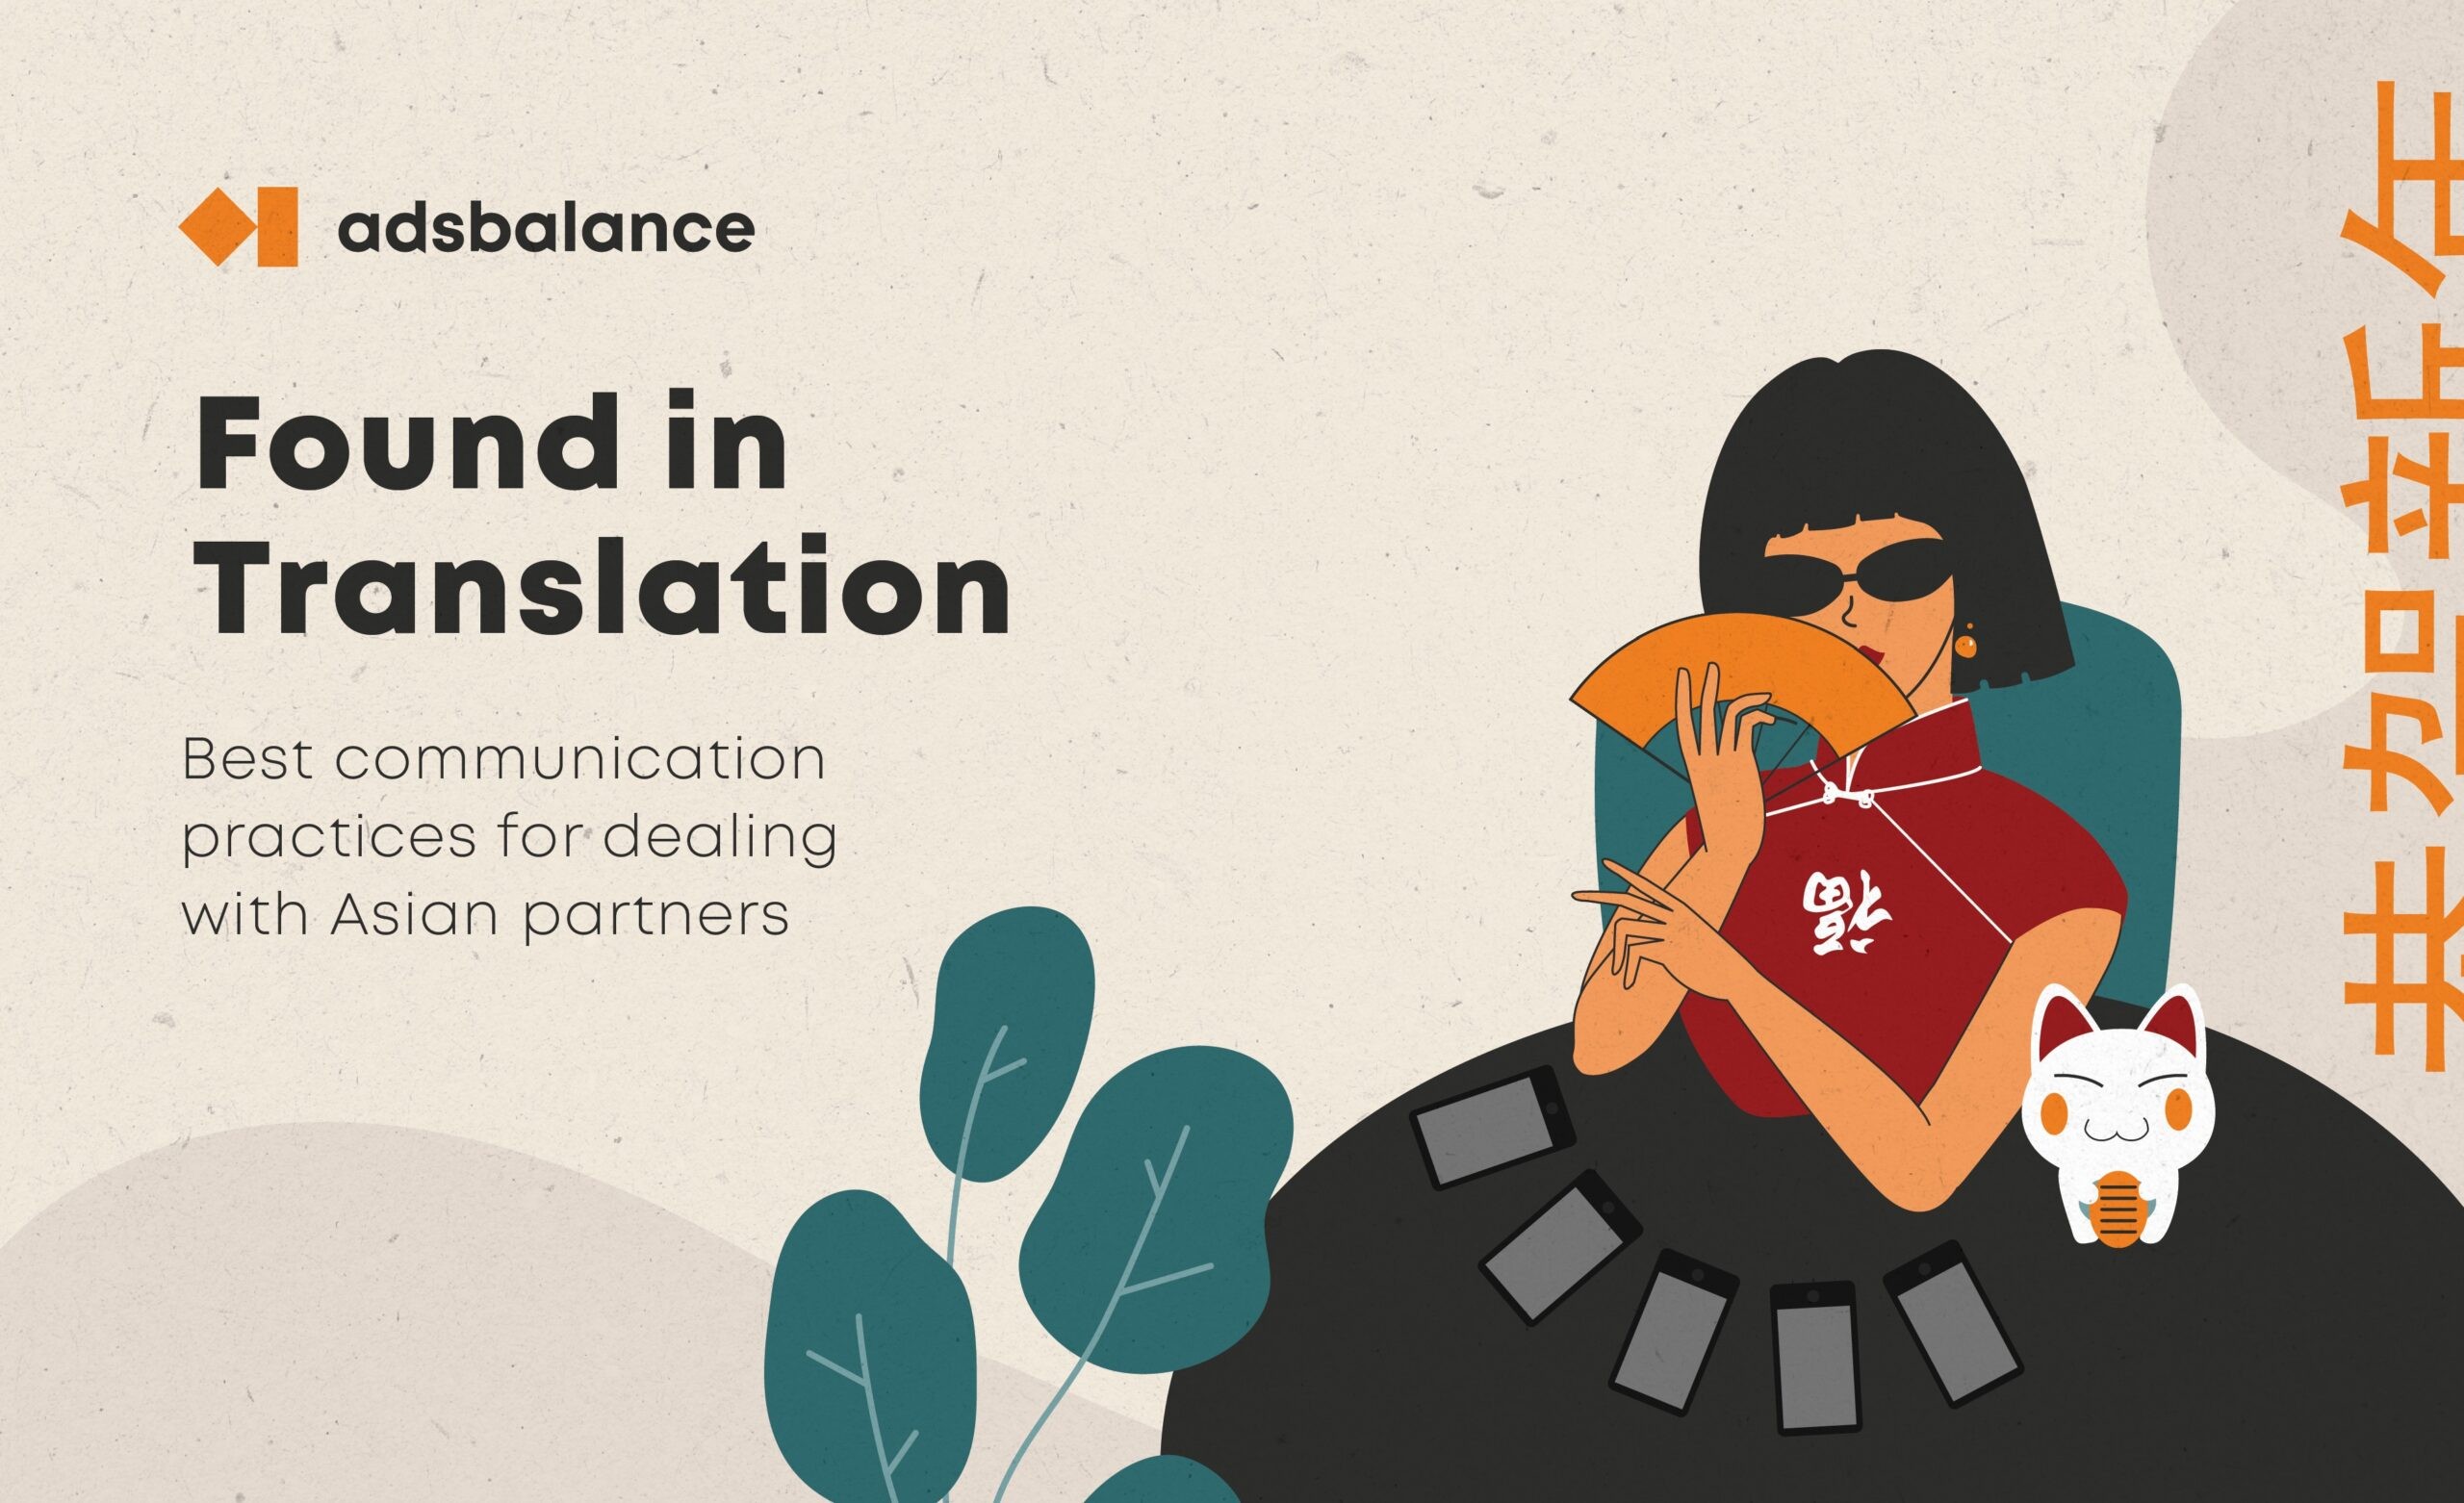 Found in Translation. The best communication practices for dealing with Asian partners.